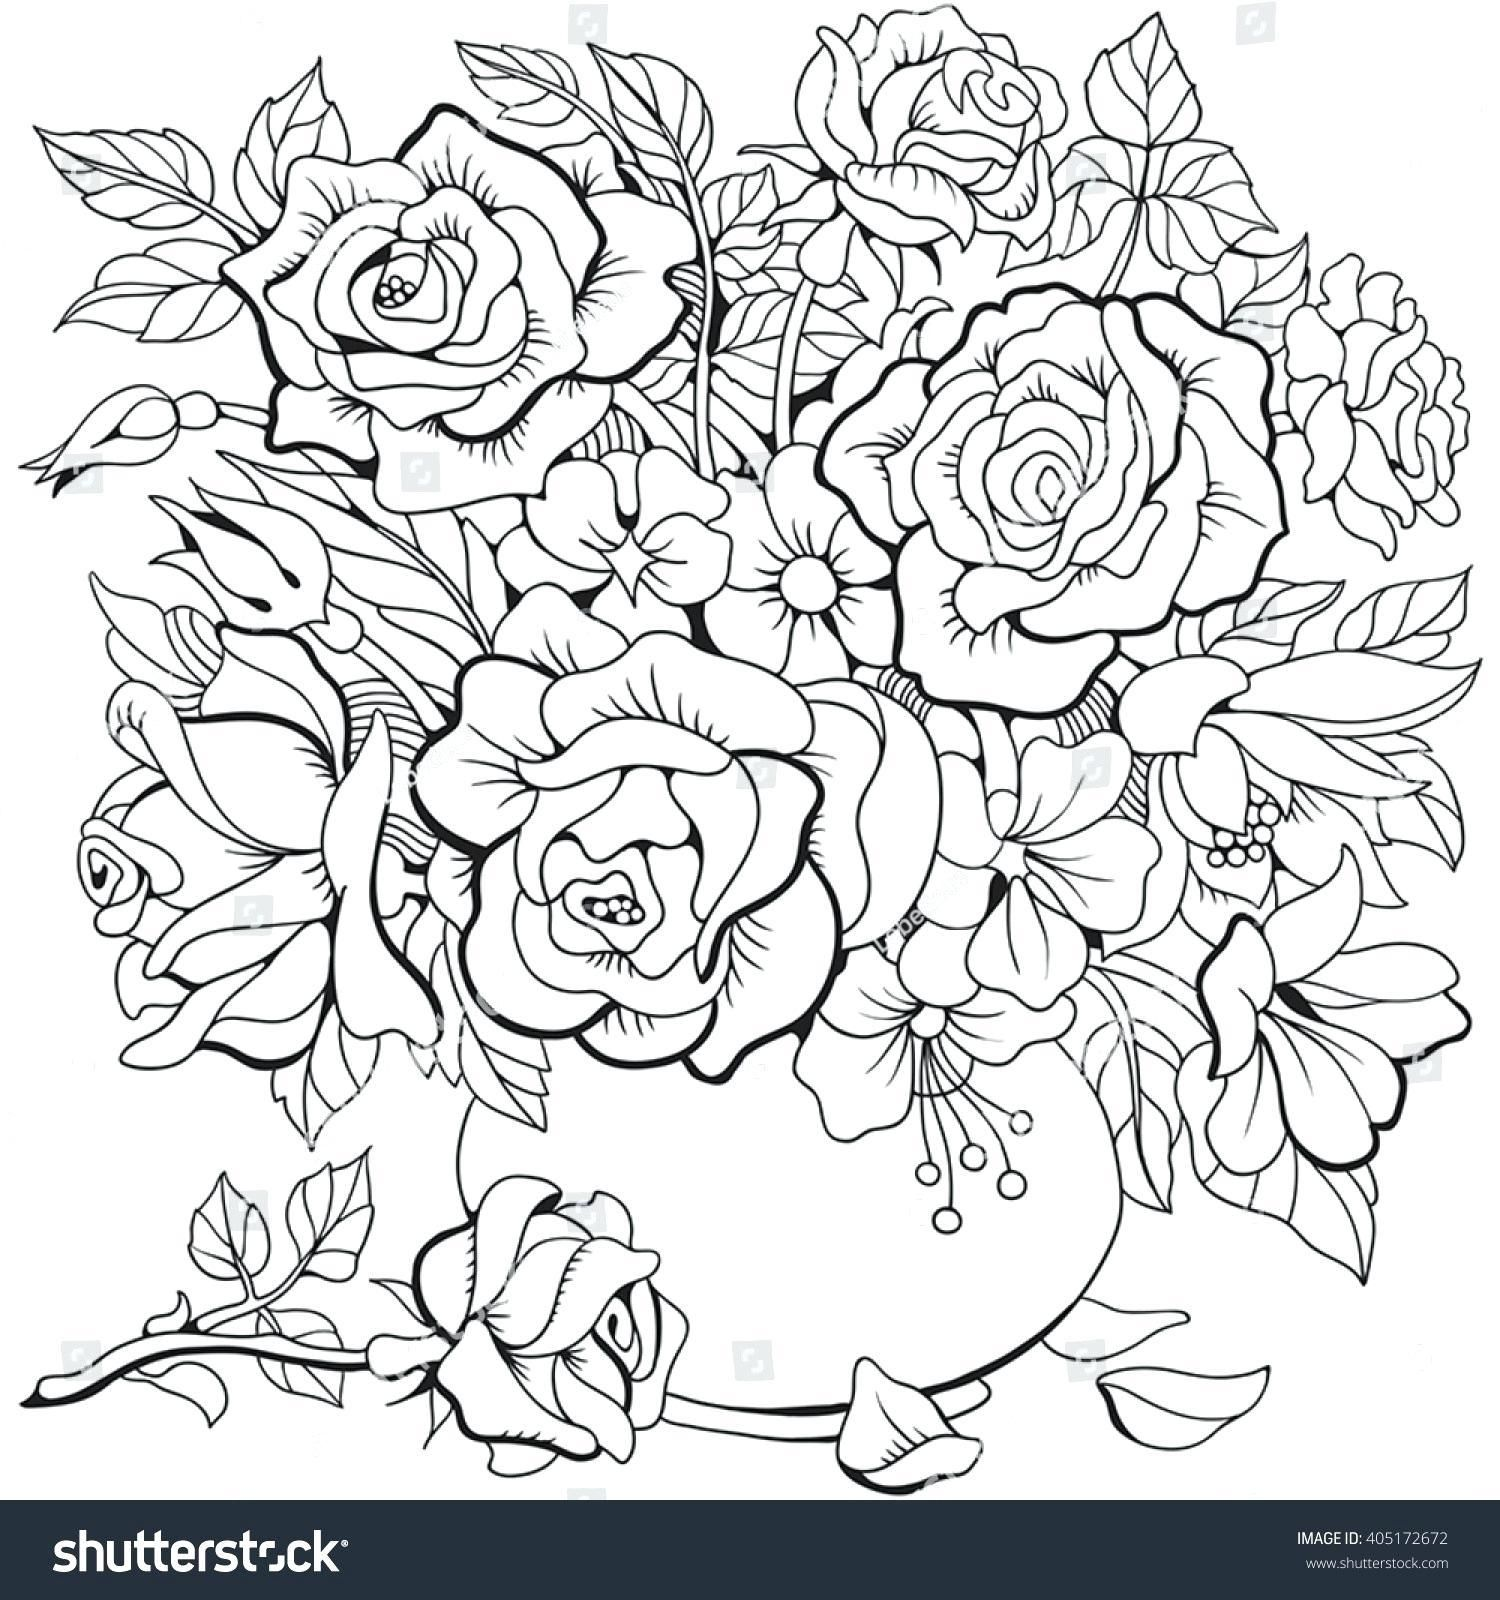 10 Coloring Page With Flowers Flower Coloring Pages Coloring Pages Mothers Day Coloring Pages